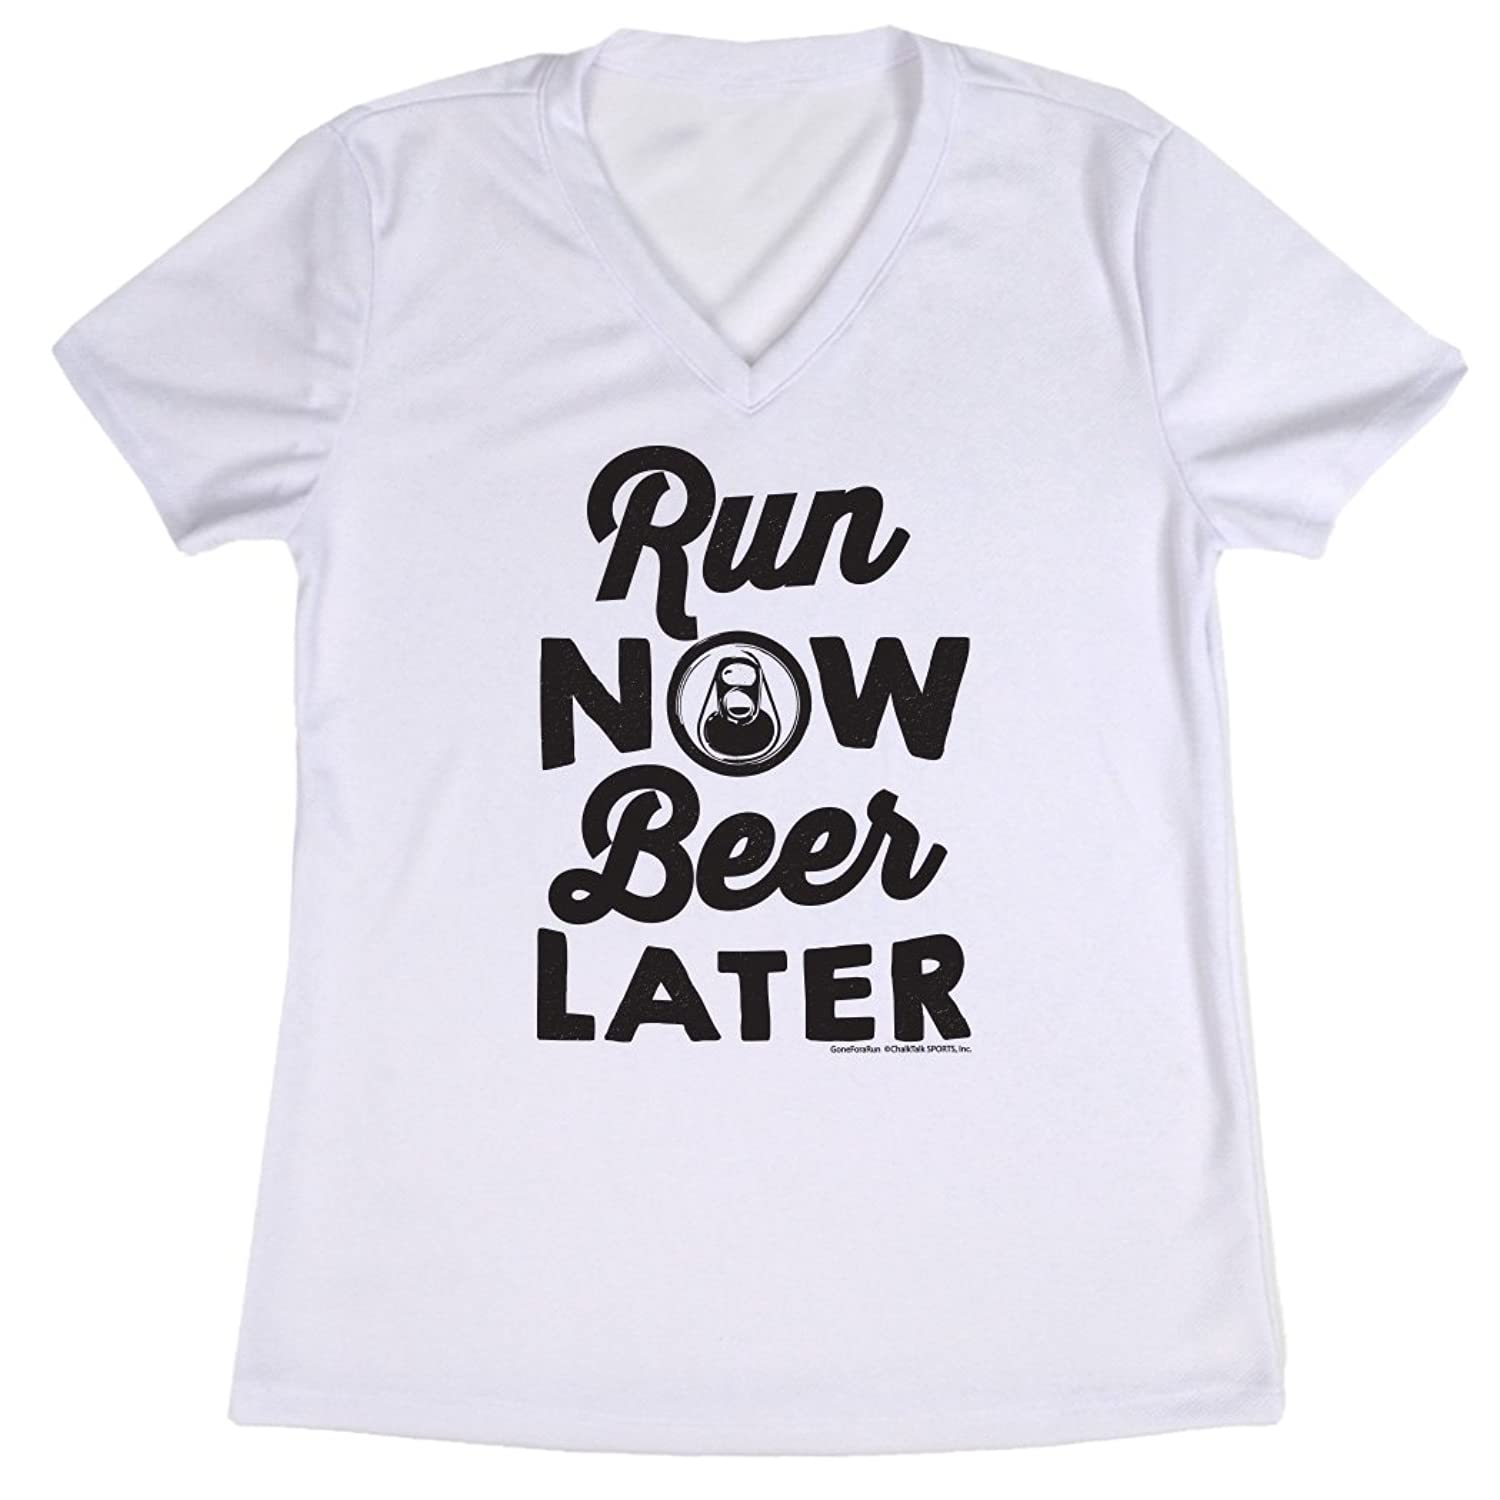 Women's Running Short Sleeve Tech Tee Run Club Run Now Beer Later